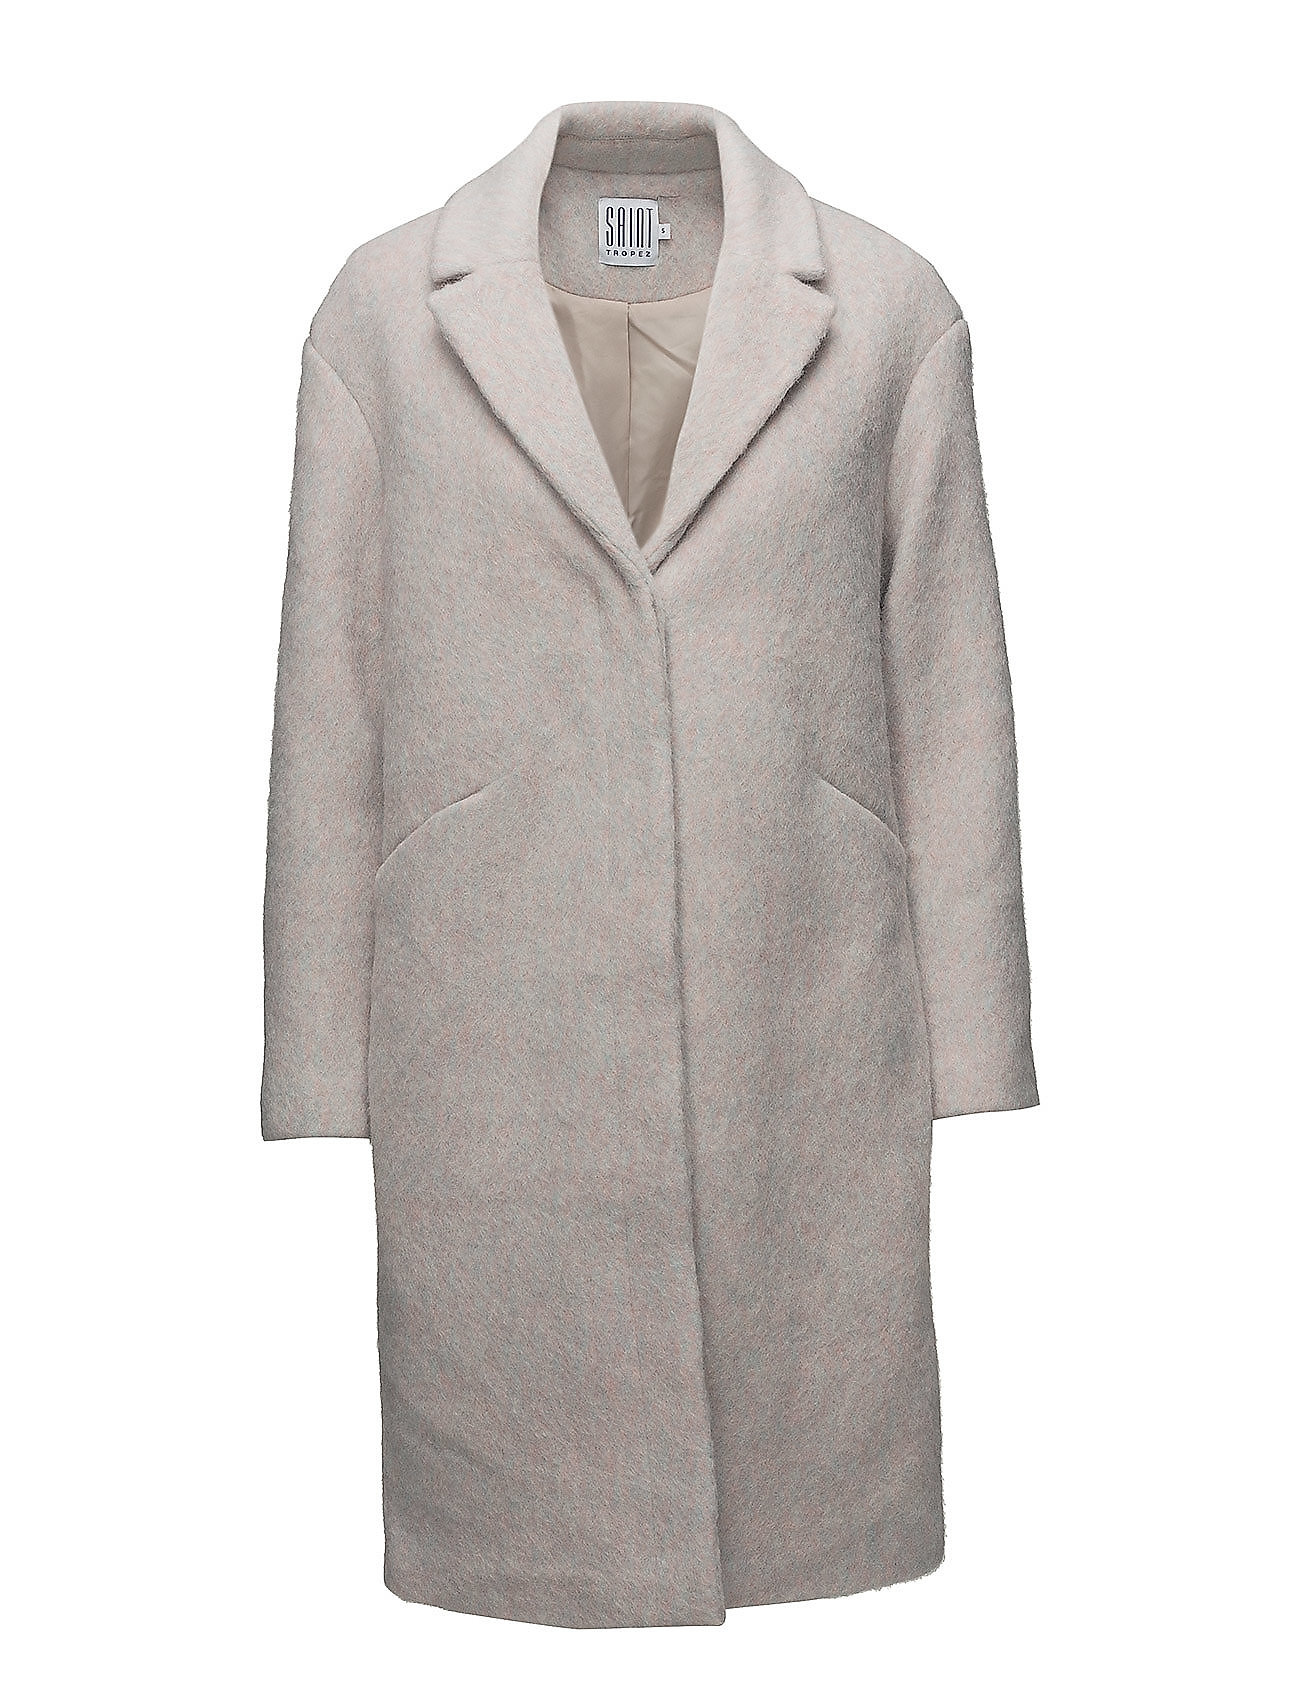 Saint Tropez LONG WOOL COAT